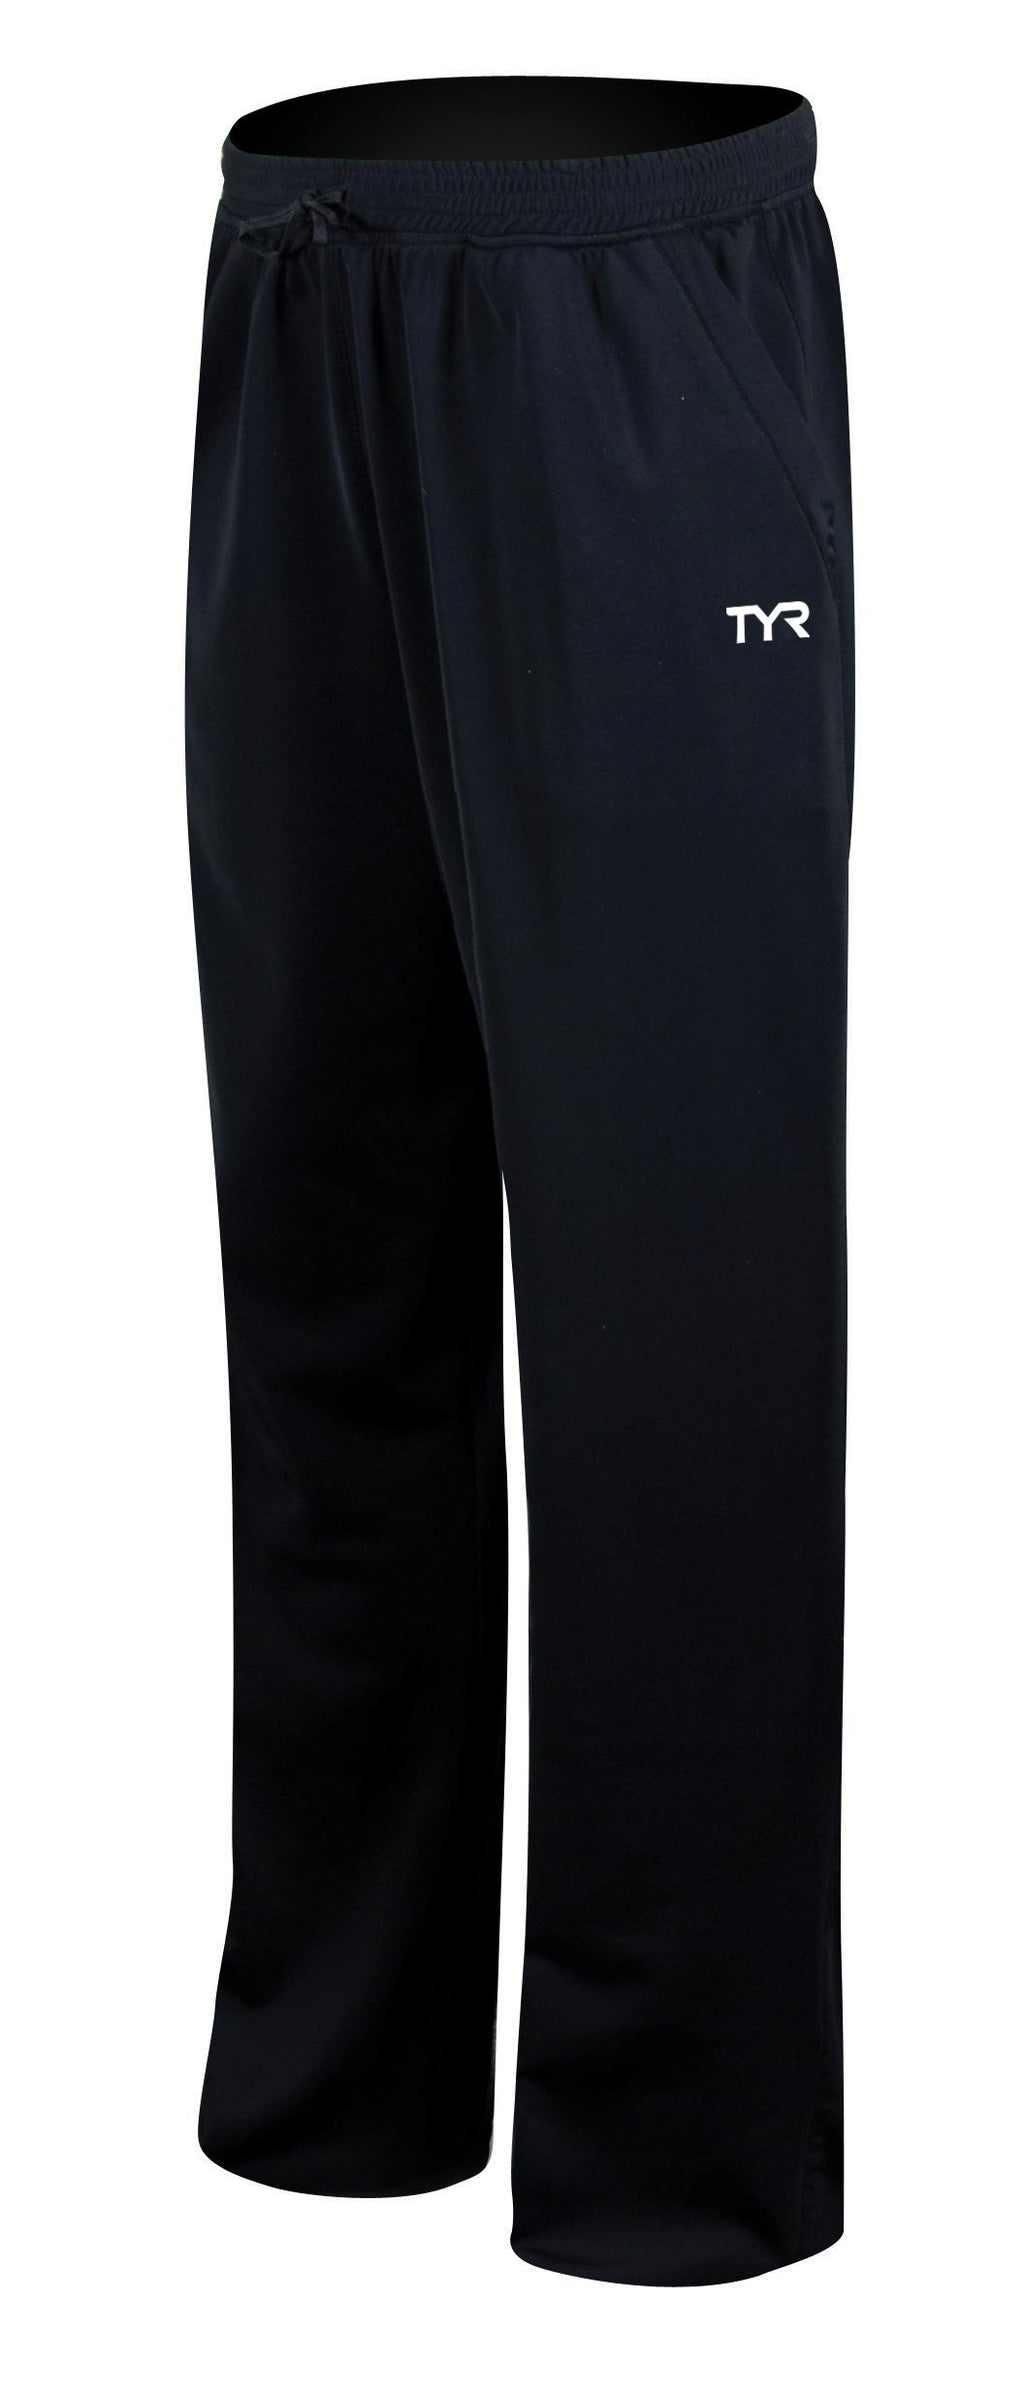 664f11578 MEN'S ALLIANCE VICTORY WARM UP PANT | VO2 Sports